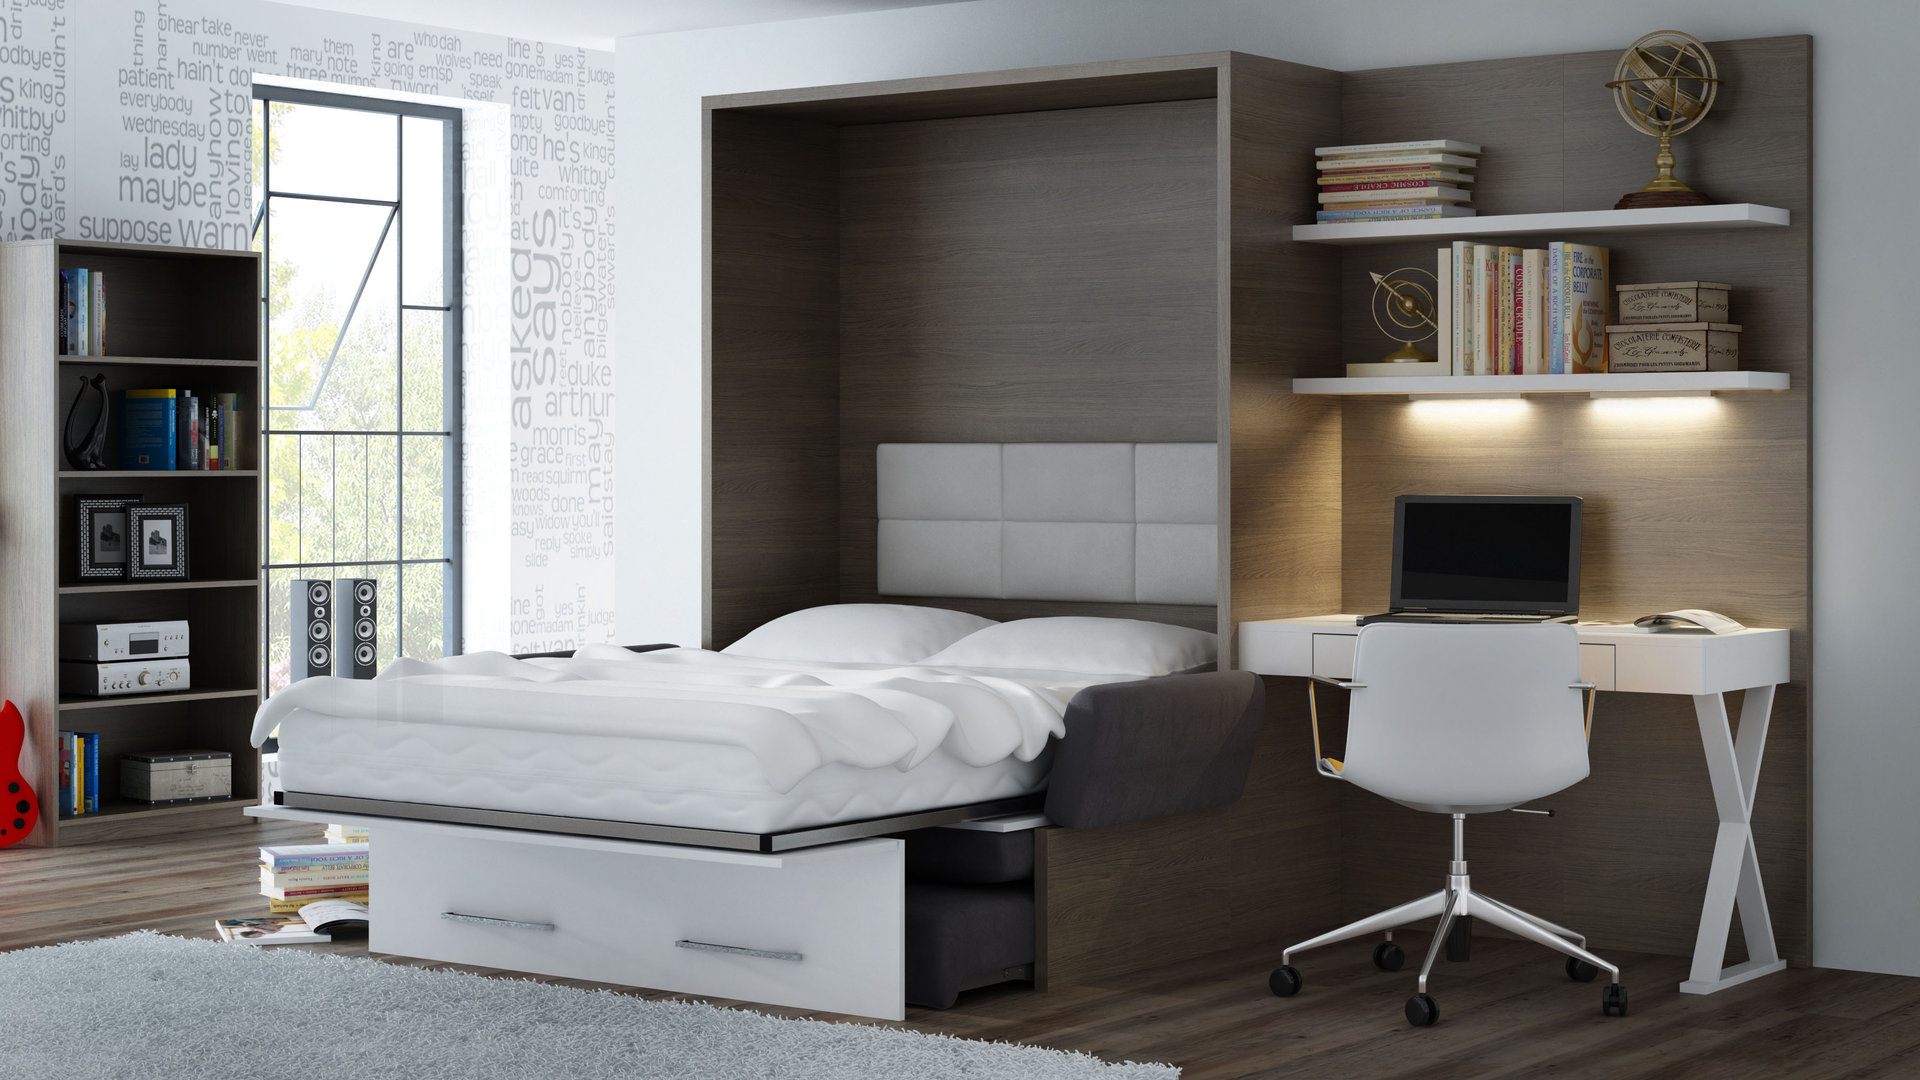 ts m bel panell mit schreibtisch office eiche grafit wei neu. Black Bedroom Furniture Sets. Home Design Ideas